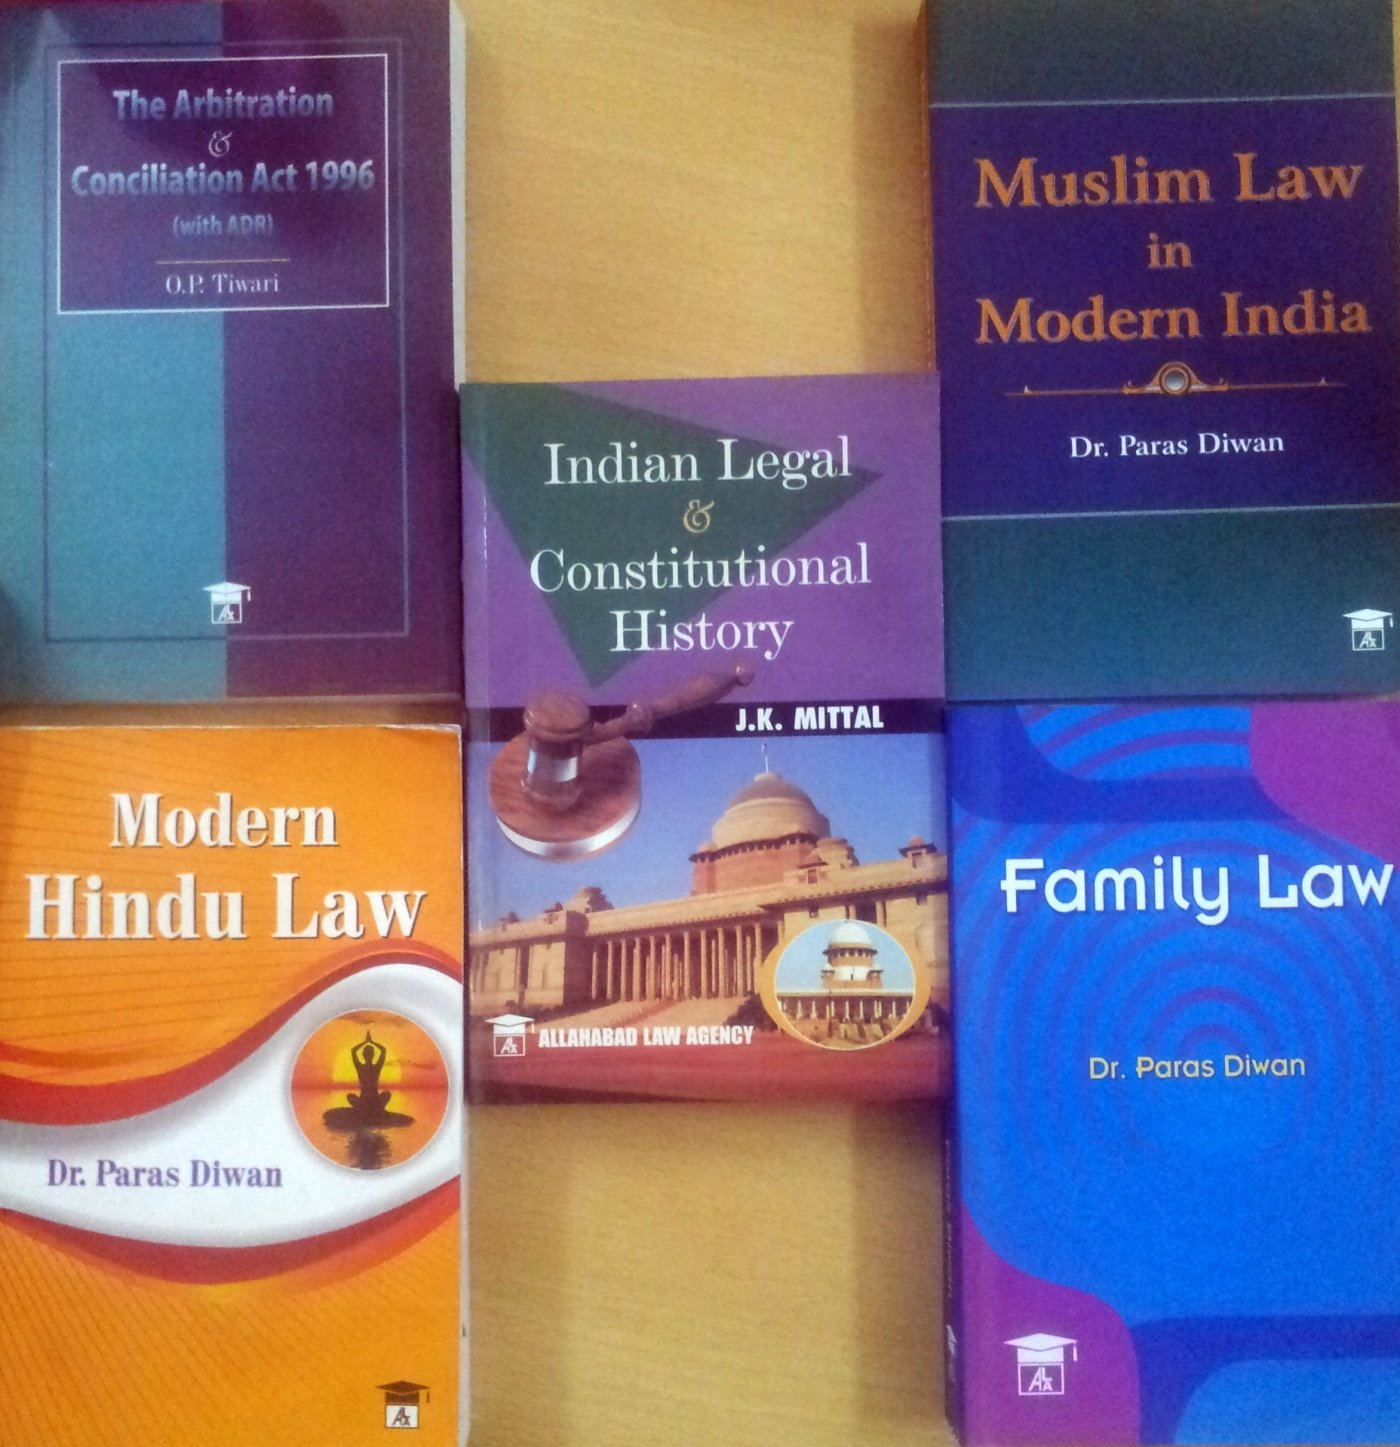 allahabad law agency Central law agency in motilal nehru road, allahabad - 211002 listed under publishers with address, phone number, map, contact details, photos, reviews and ratings of central law agency, allahabad on indiacom.